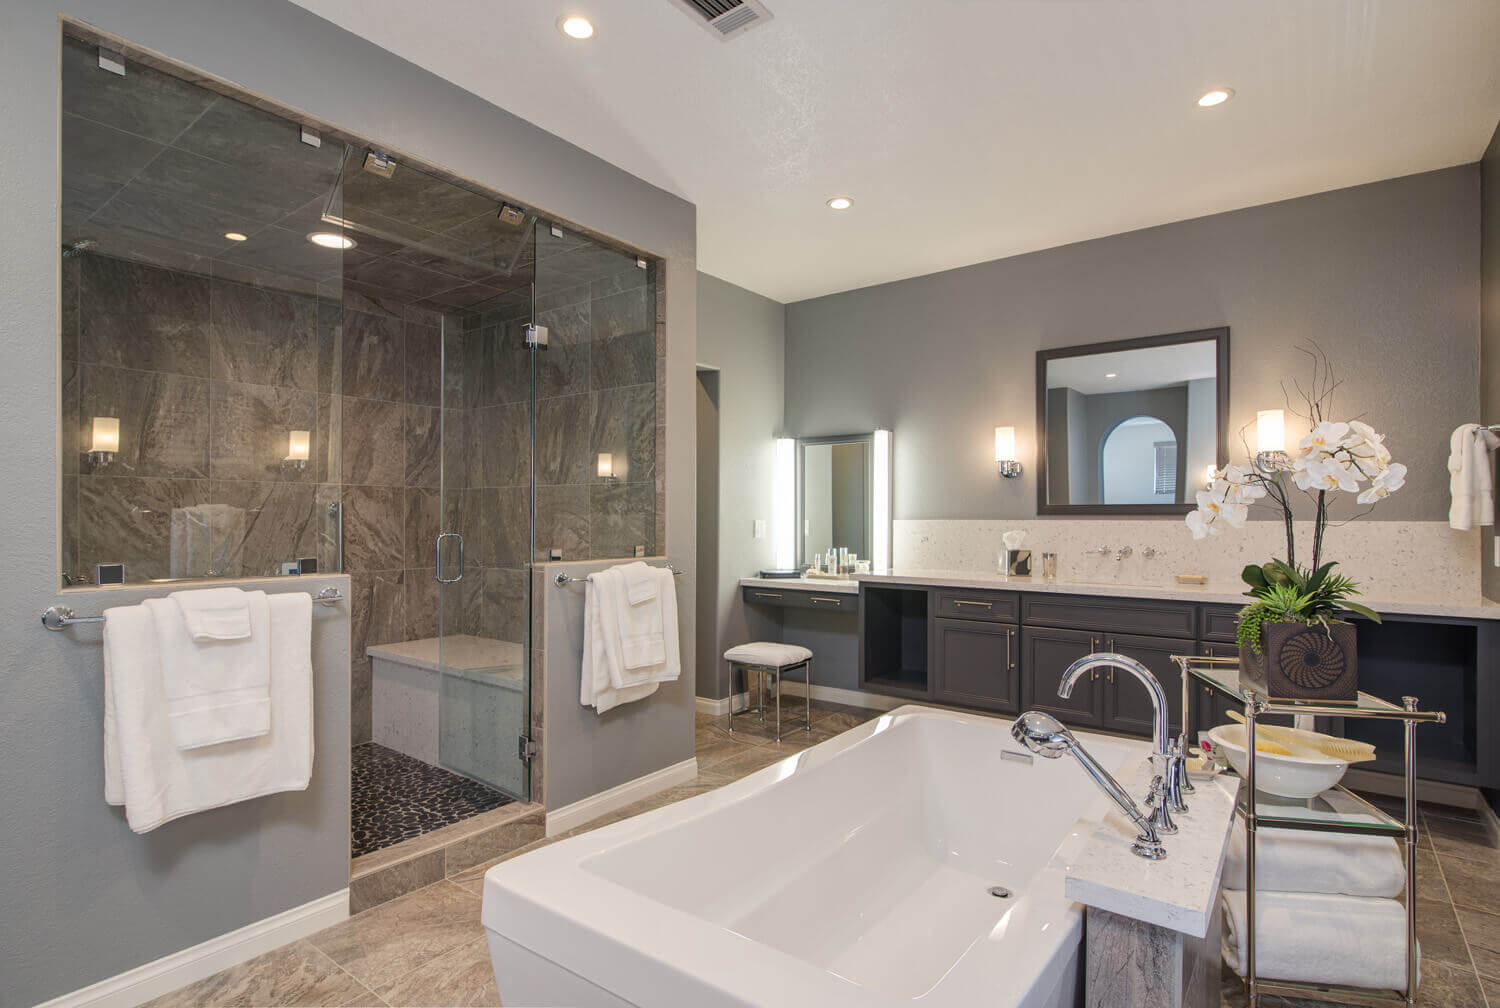 2018 bathroom renovation cost get prices for the most - Average cost of a new bathroom 2017 ...